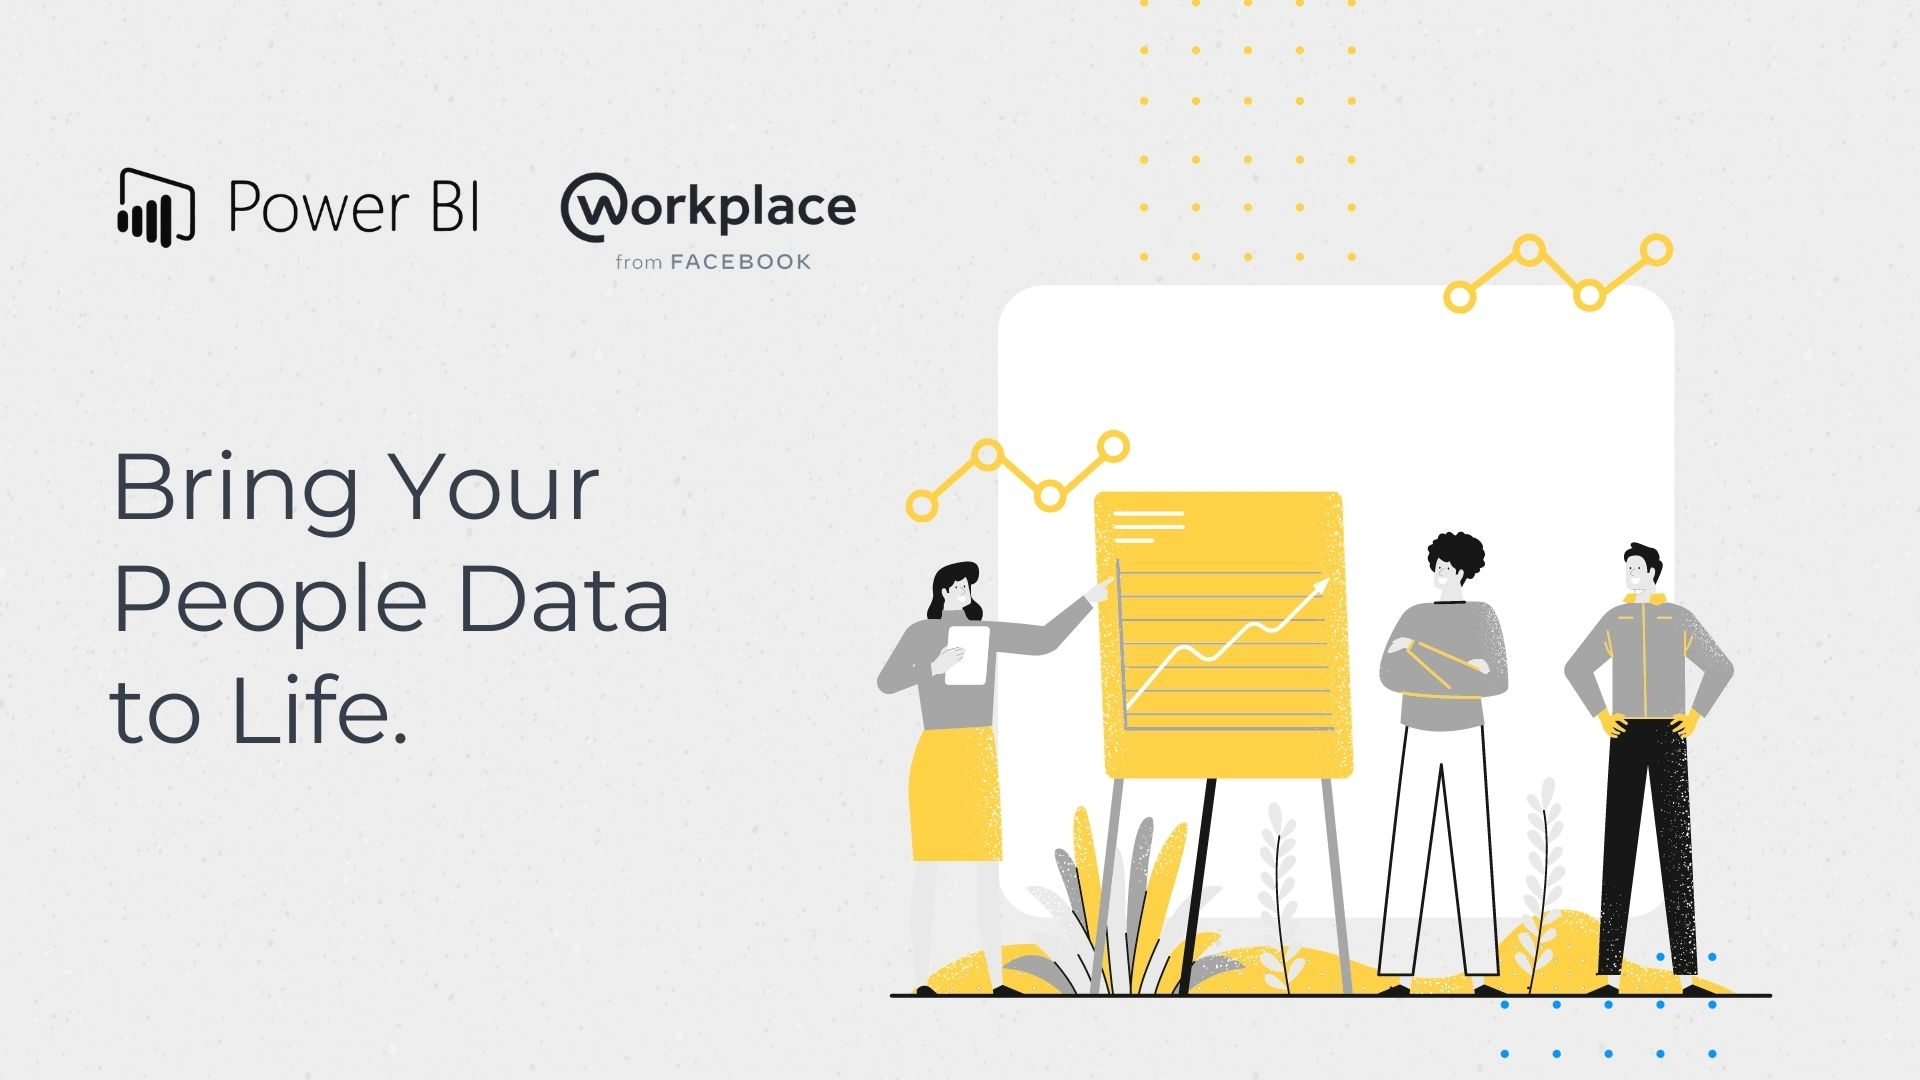 power bi and workplace from facebook